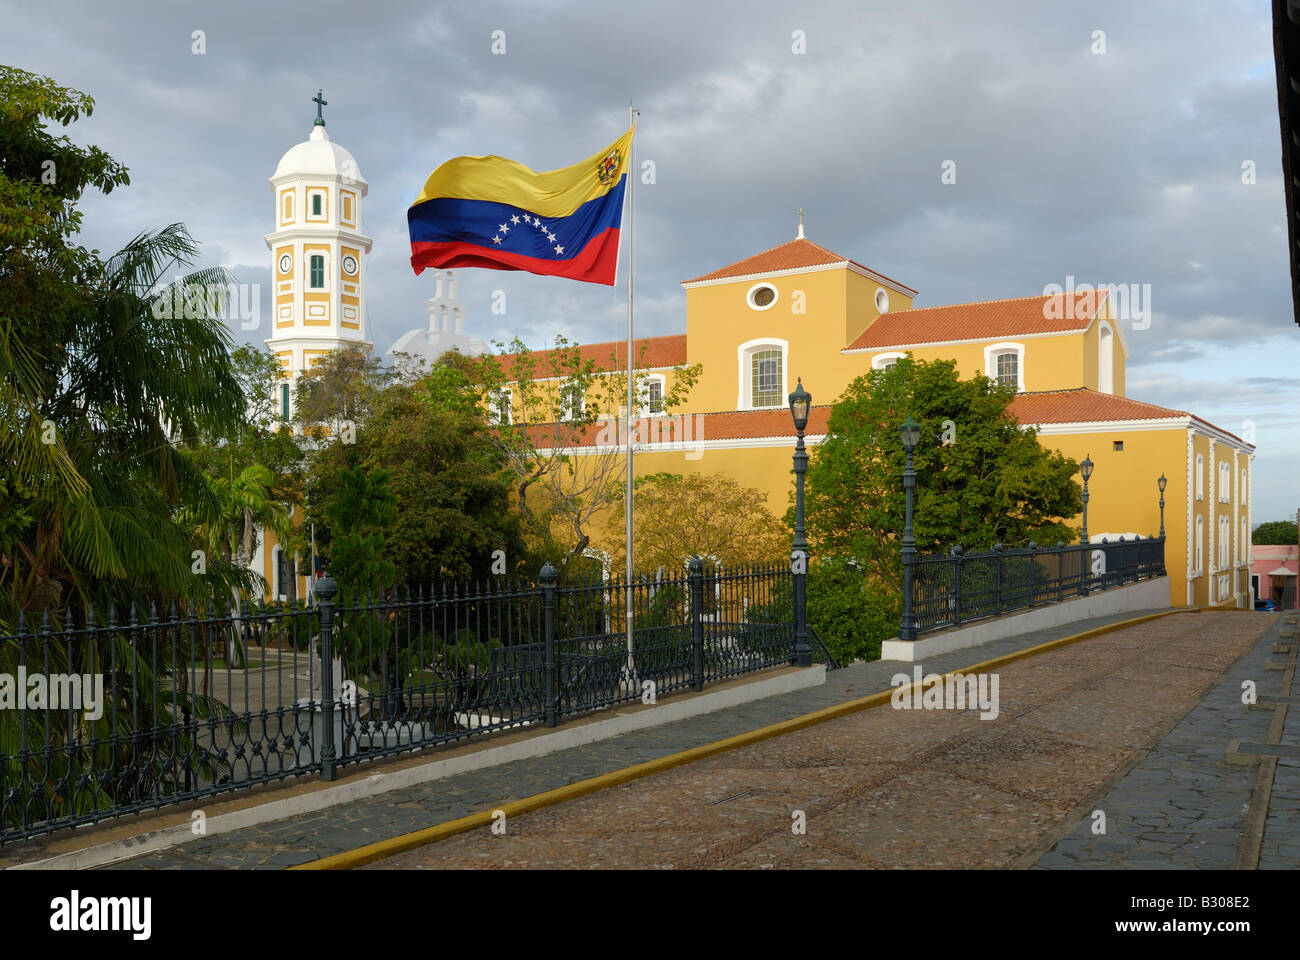 Cathedral and flag historic city centre Ciudad Bolivar, Venezuela, South America - Stock Image